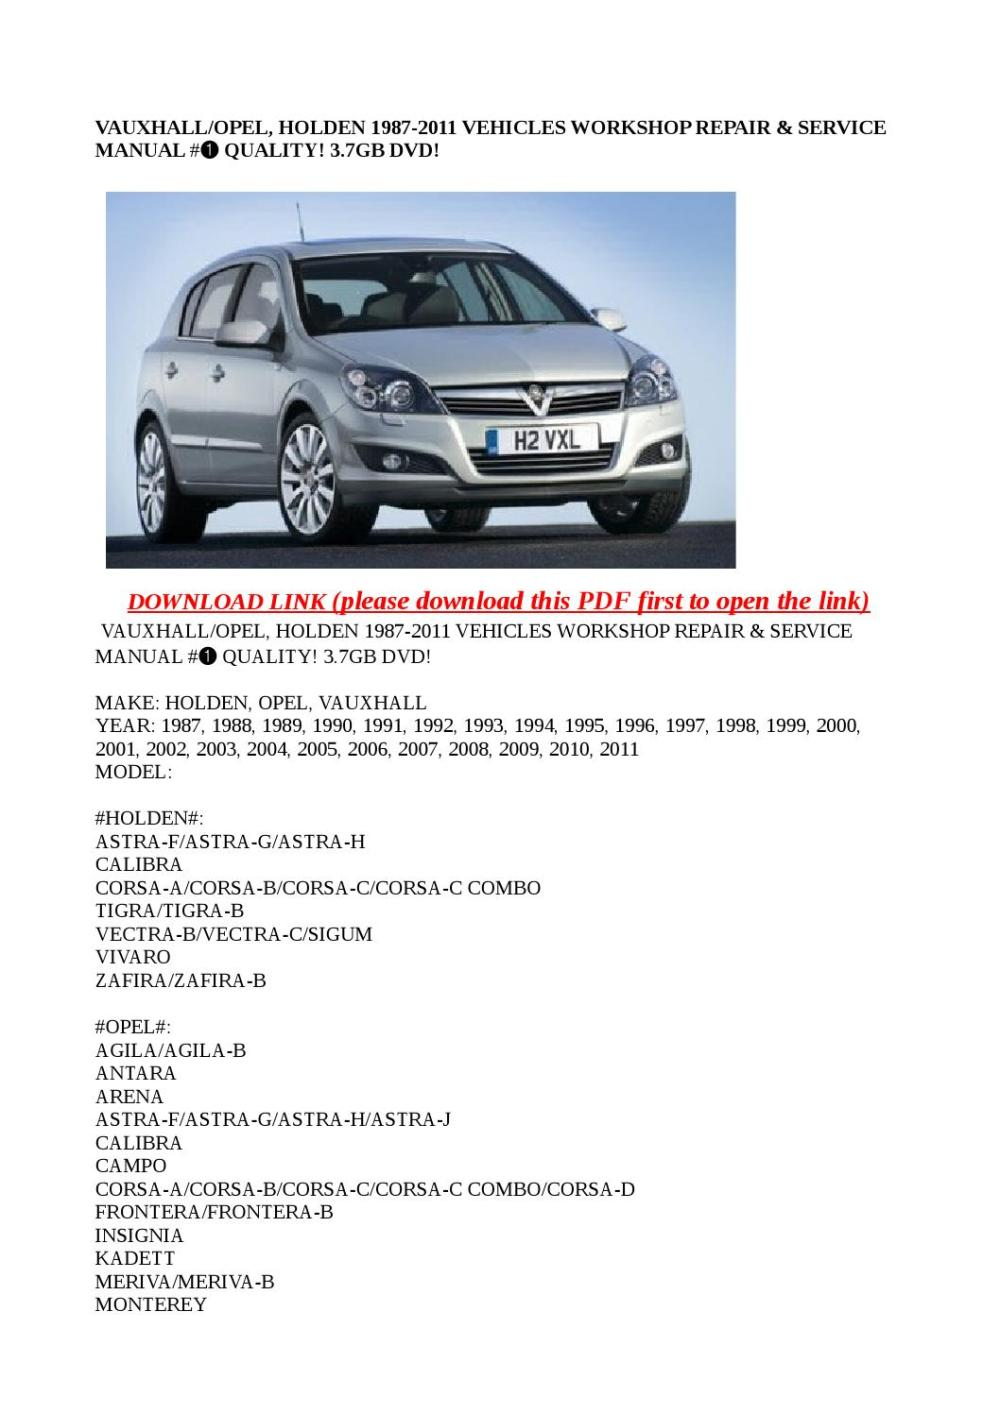 medium resolution of vauxhall corsa d wiring diagram pdf